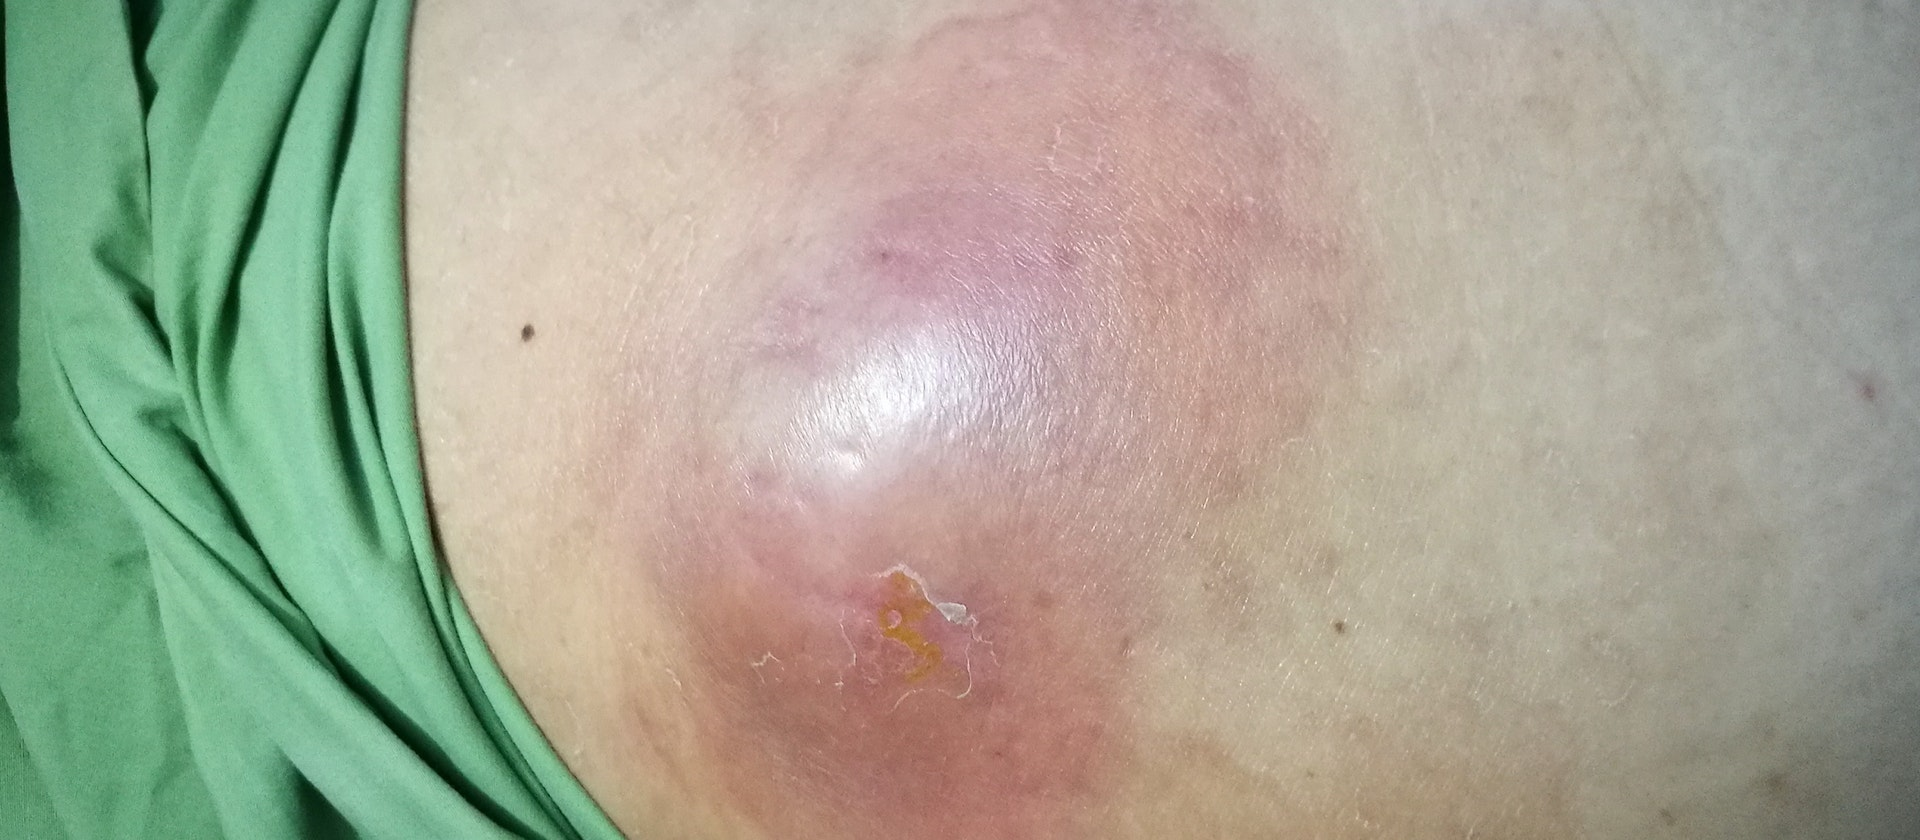 Sore butt crack